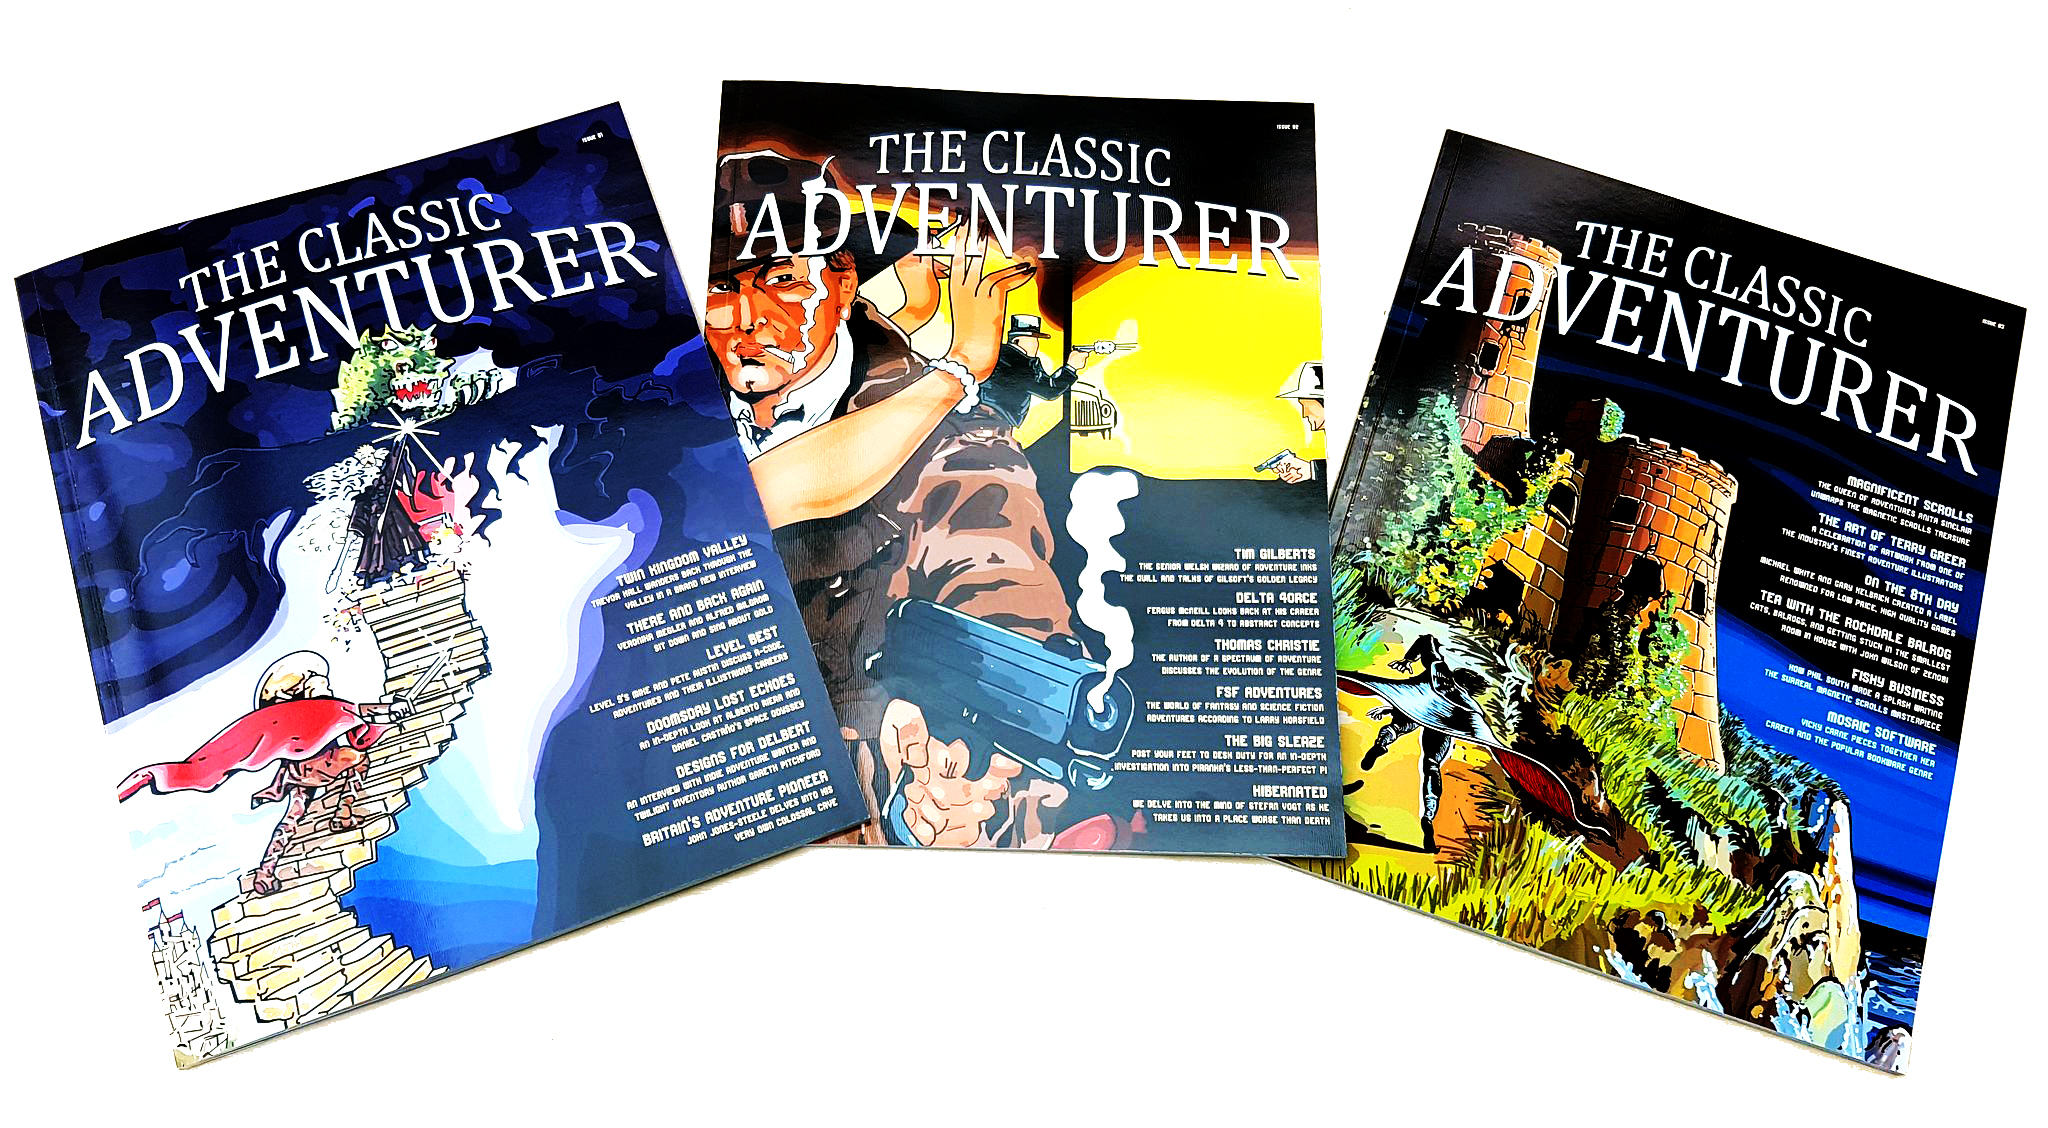 NOTE: The picture shows three issues of THE CLASSIC ADVENTURER, the prize is ONE issue only